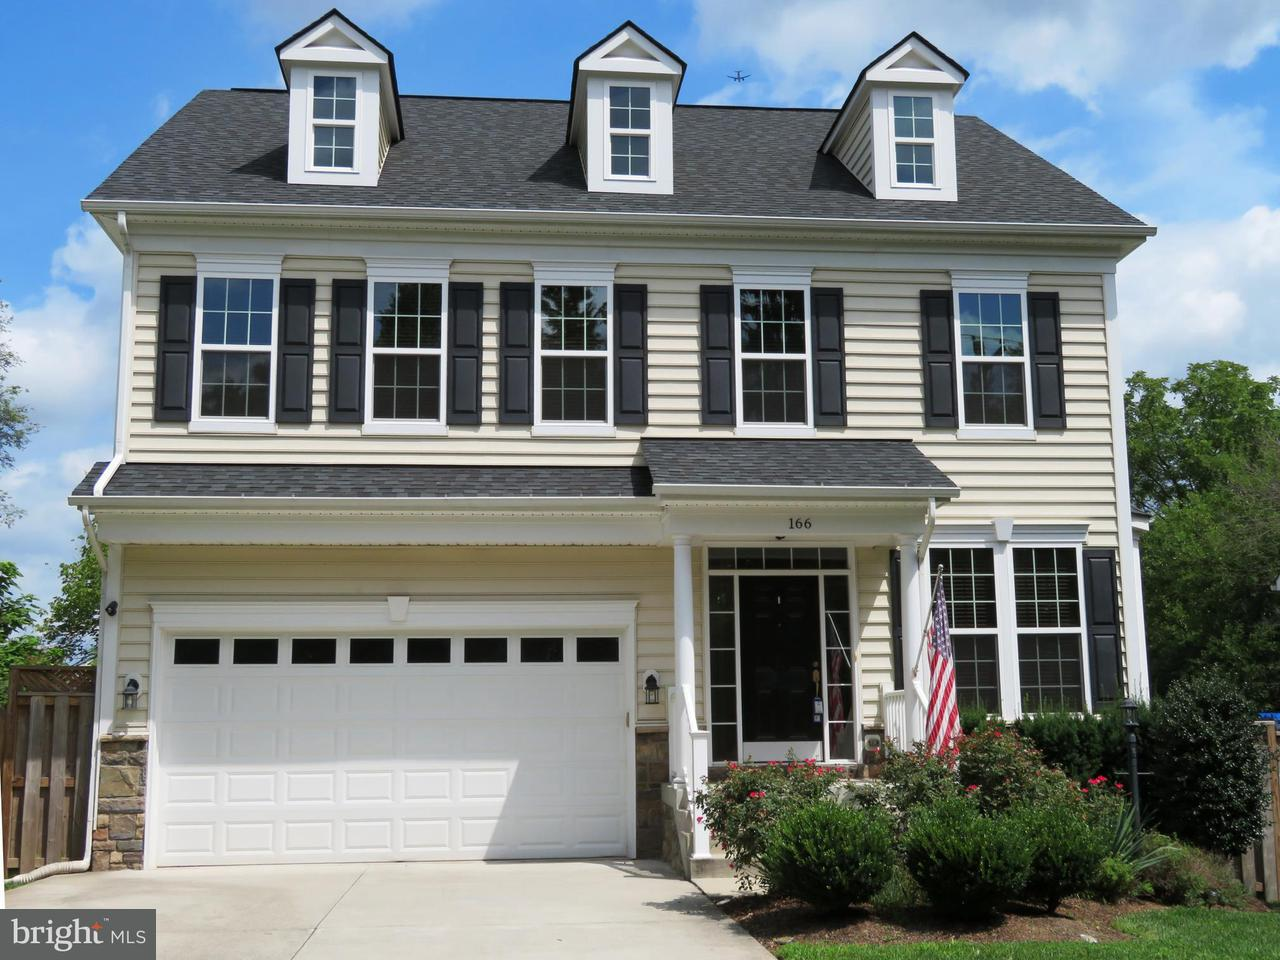 Single Family Home for Sale at 166 CABBEL Drive 166 CABBEL Drive Manassas Park, Virginia 20111 United States